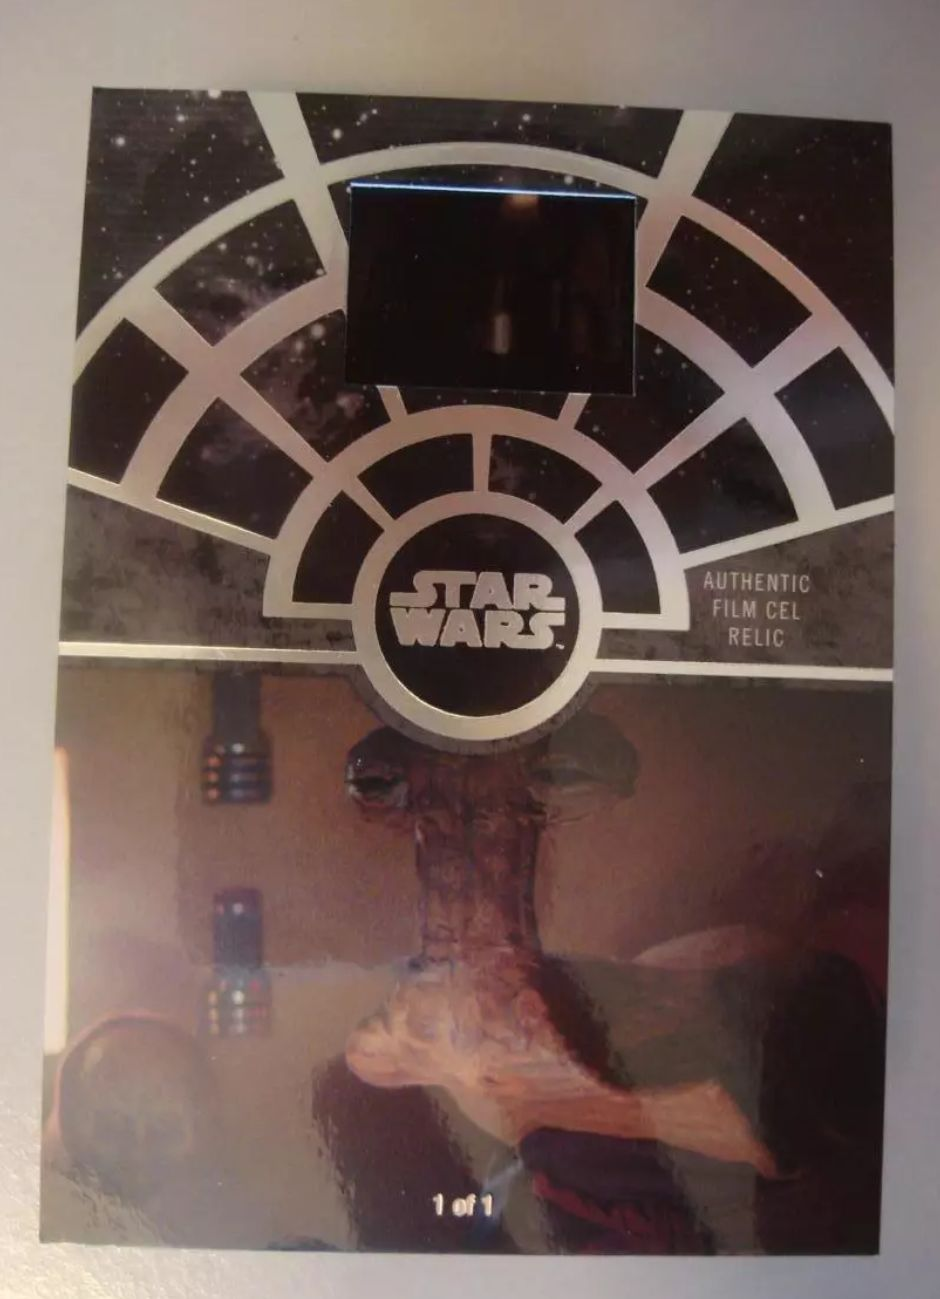 The Sphinx Star Wars 40th Anniversary Film Cel Relic Card Topps 2017